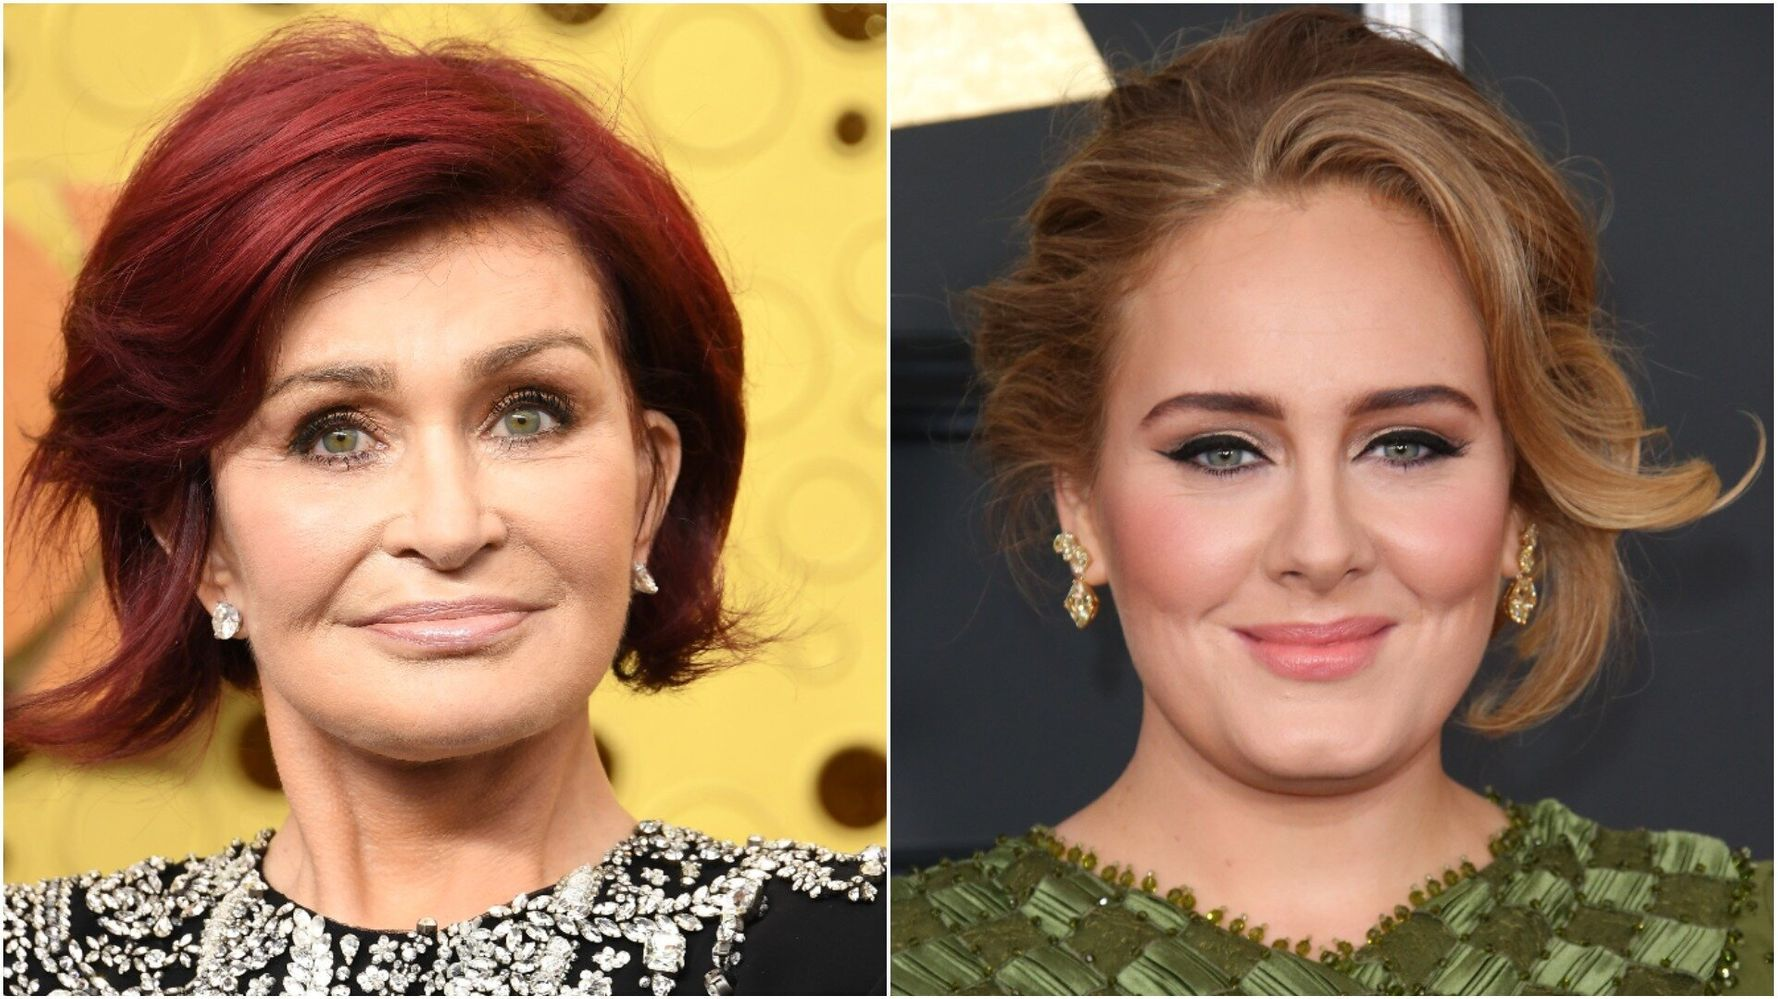 Sharon Osbourne Fuels Body Image Debate With Cringey Take ...